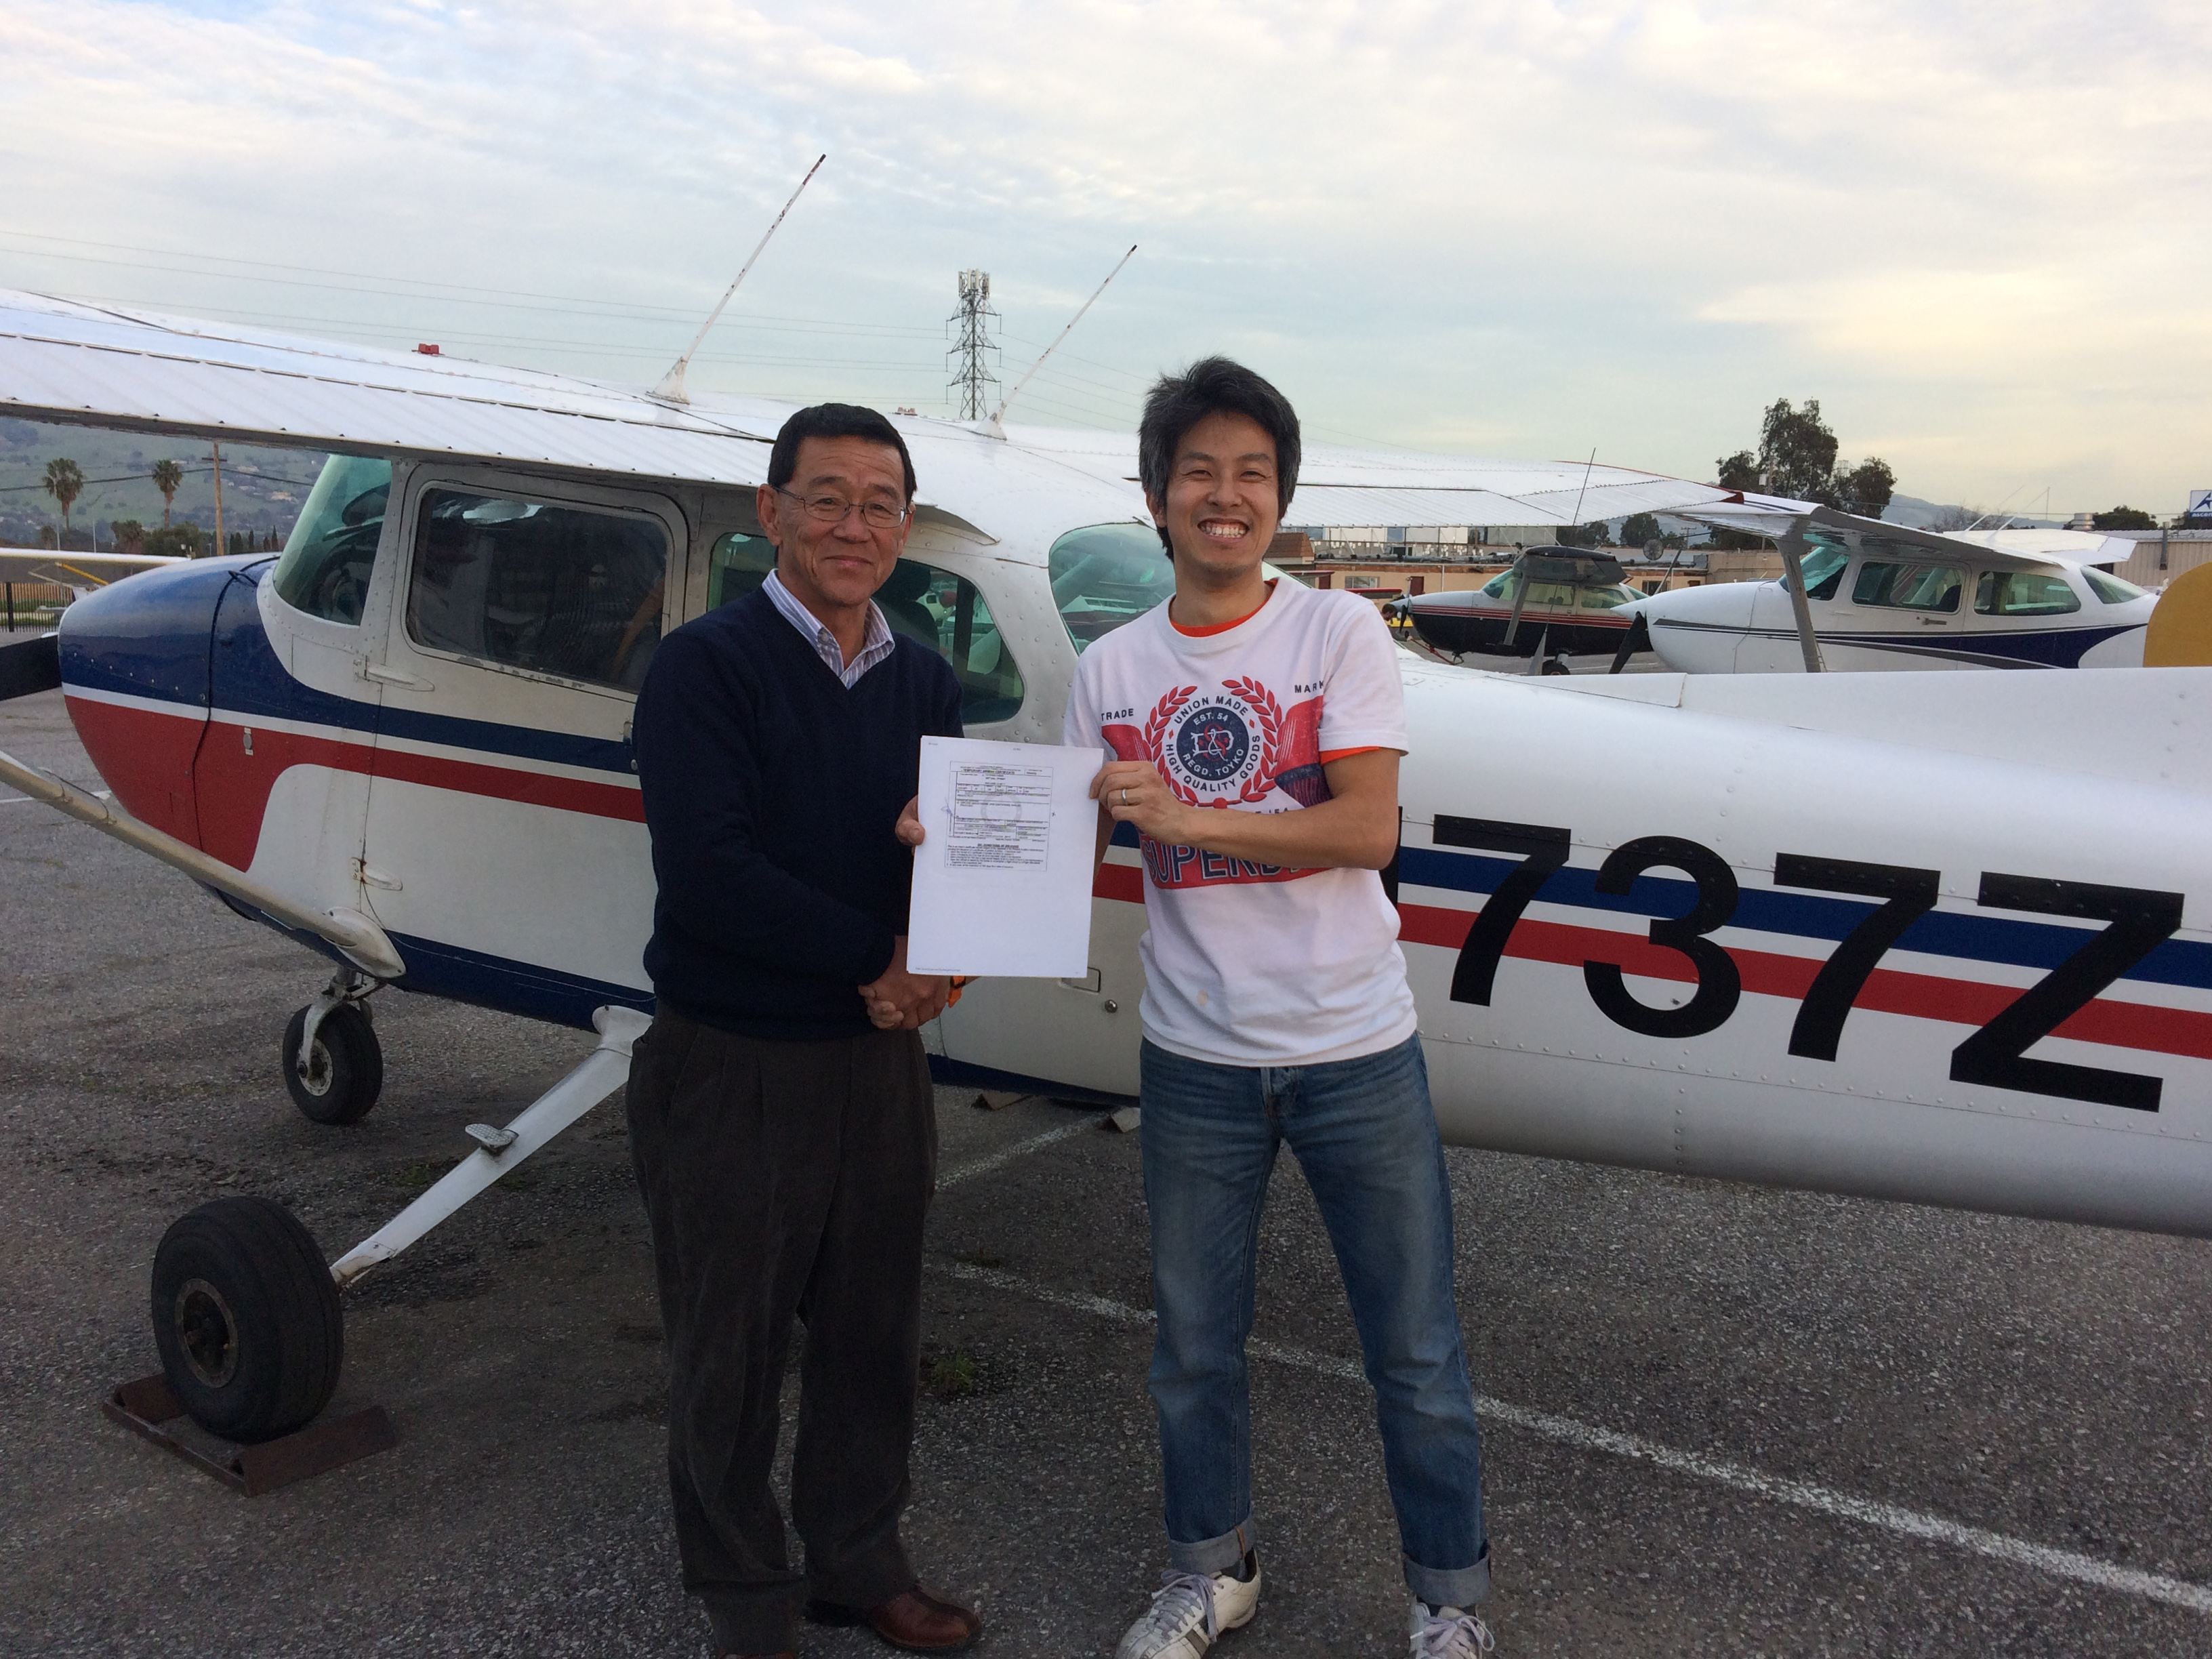 checkride, Cessna 172, private pilot